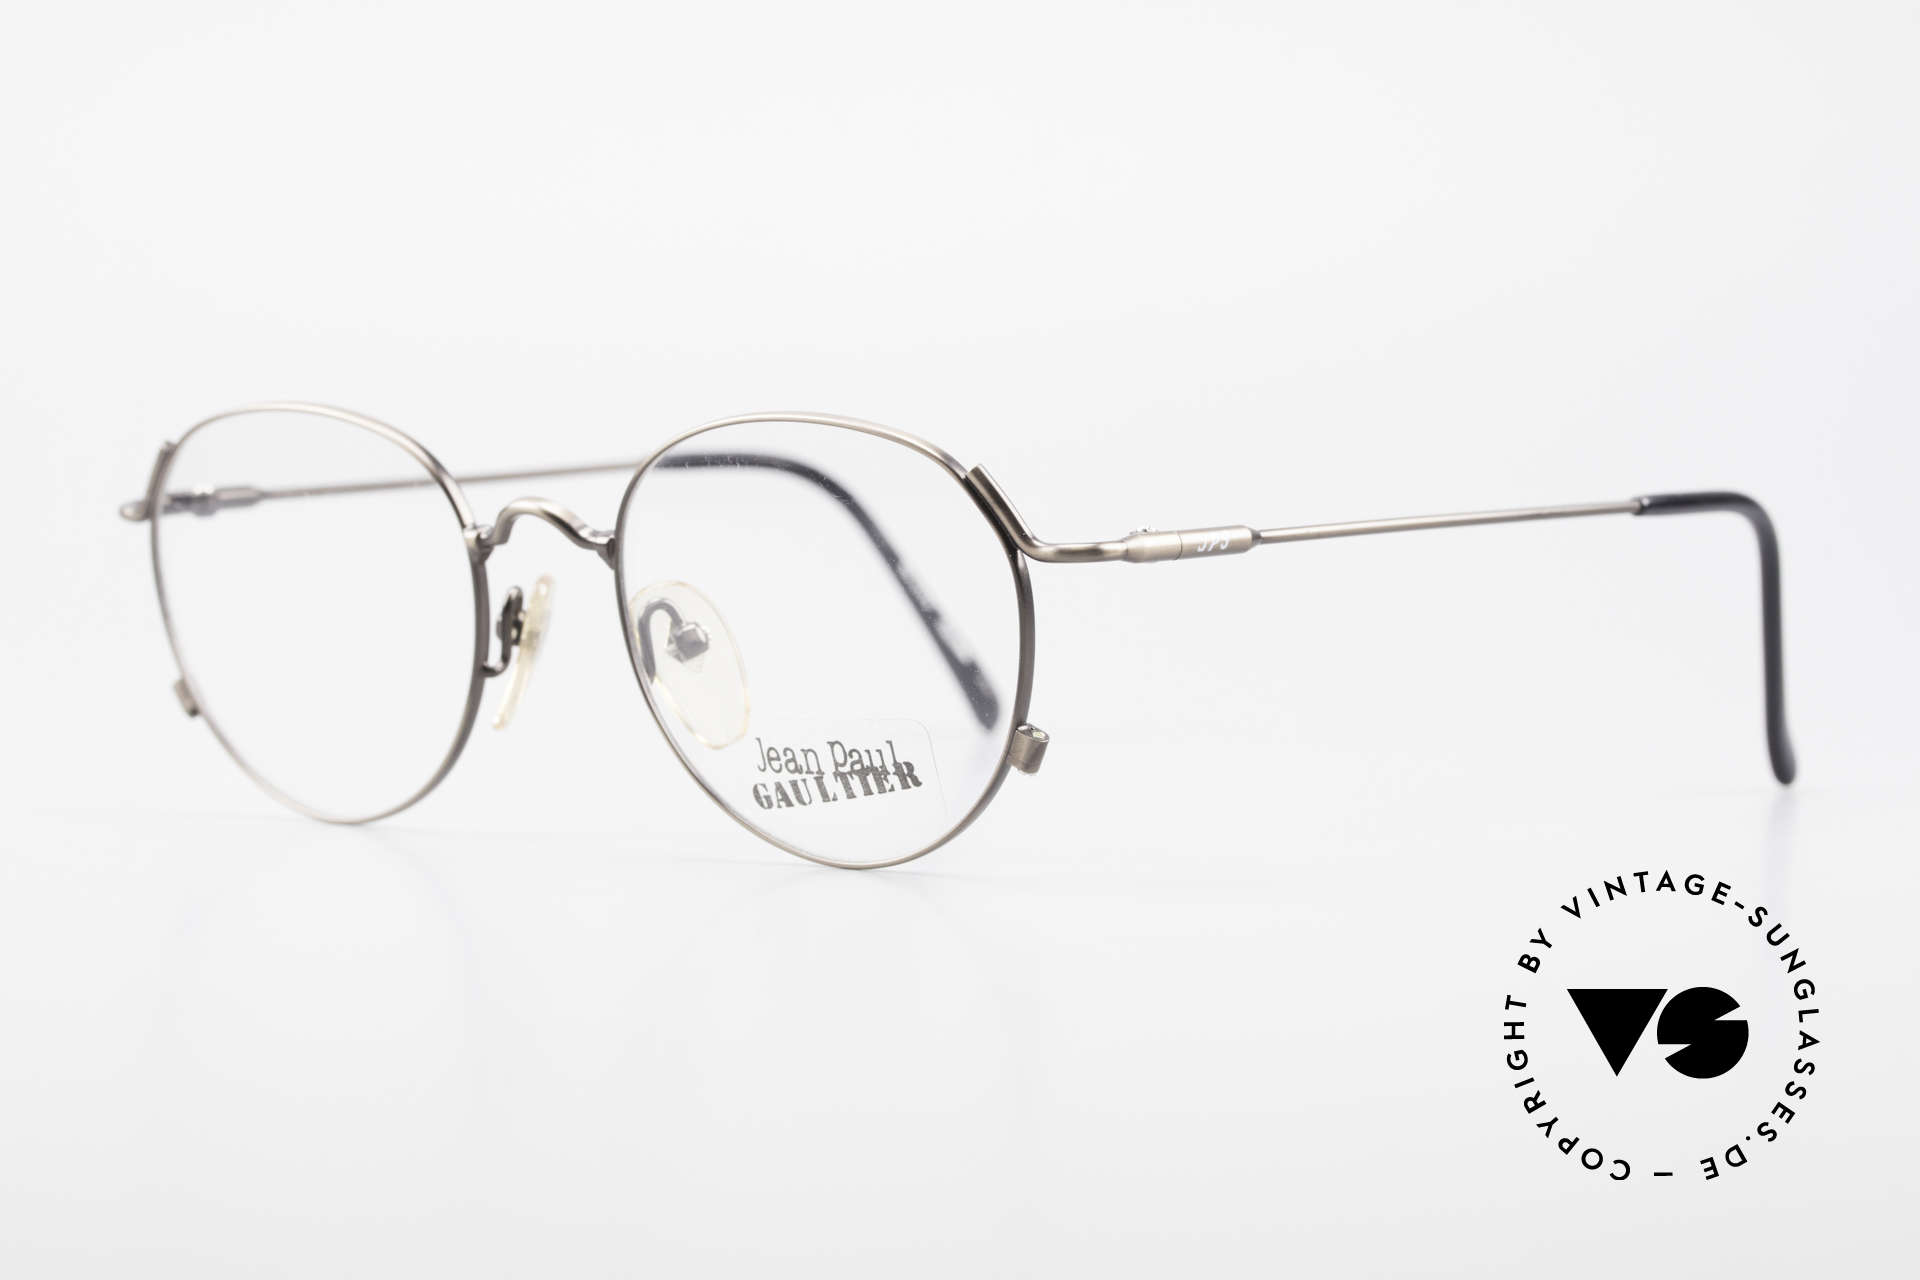 """Jean Paul Gaultier 55-2176 JPG Panto Glasses 90s Original, extraordinary frame finish in """"taupe metallic"""", Made for Men and Women"""